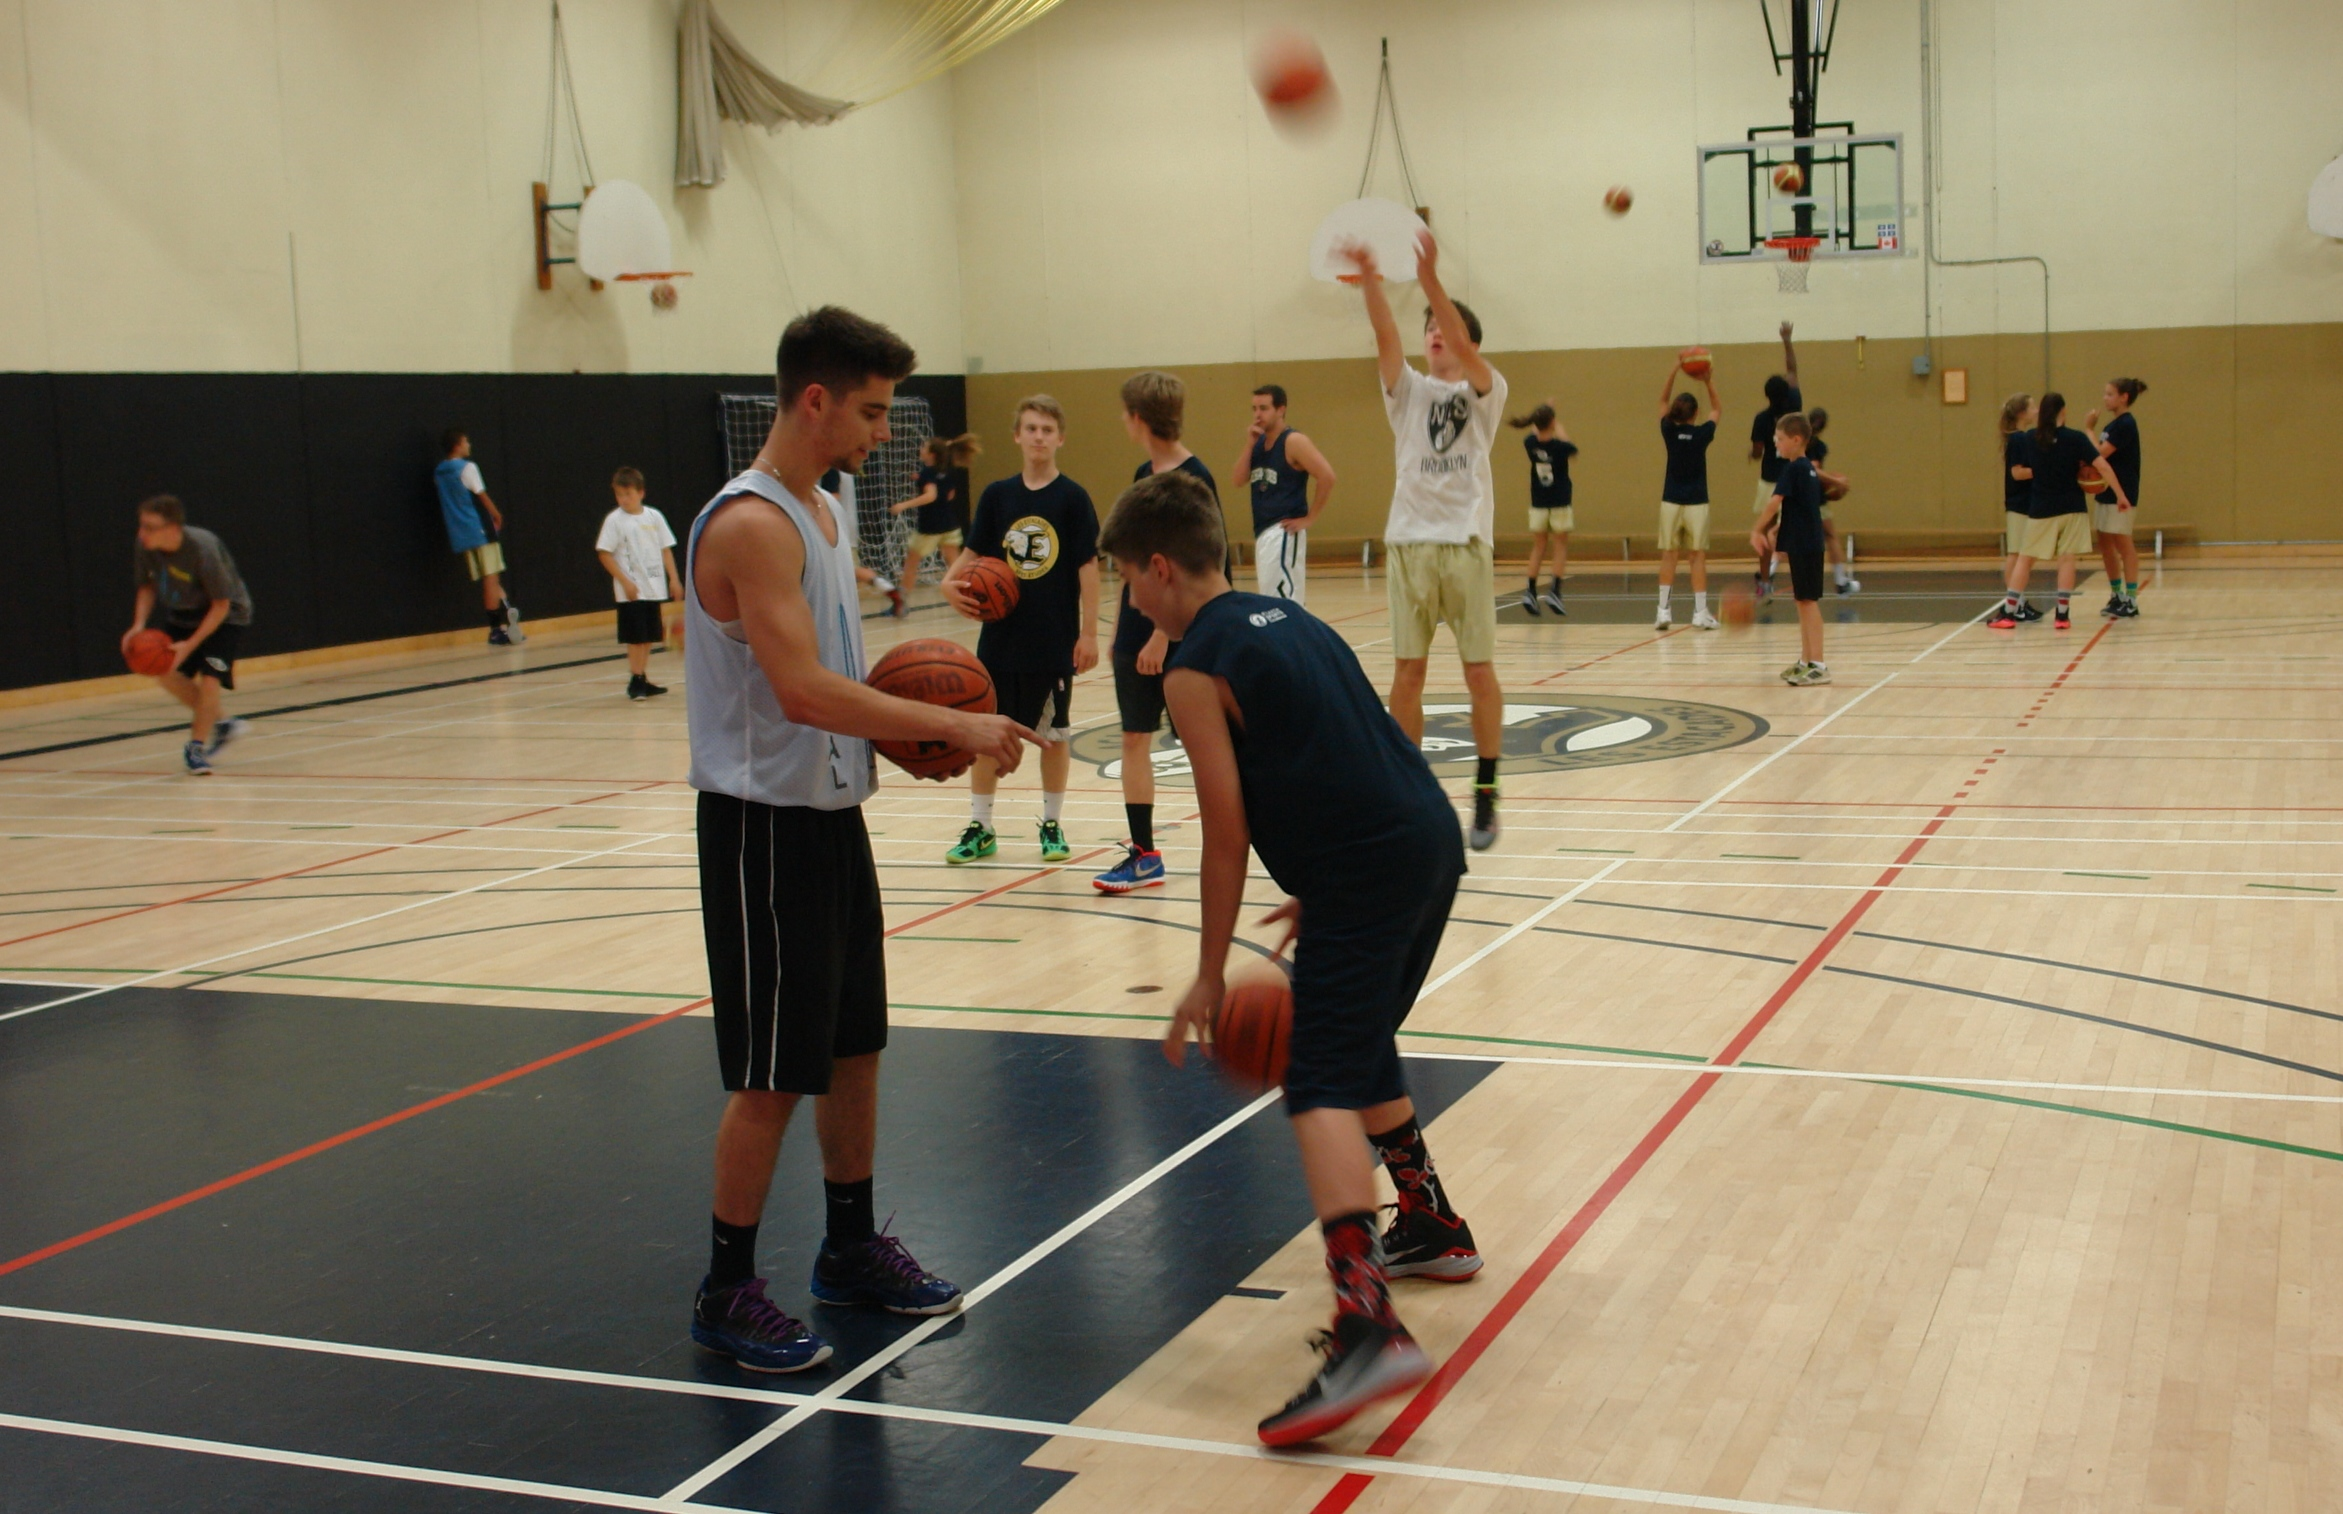 Camp basketball VITAL 2015 - 3